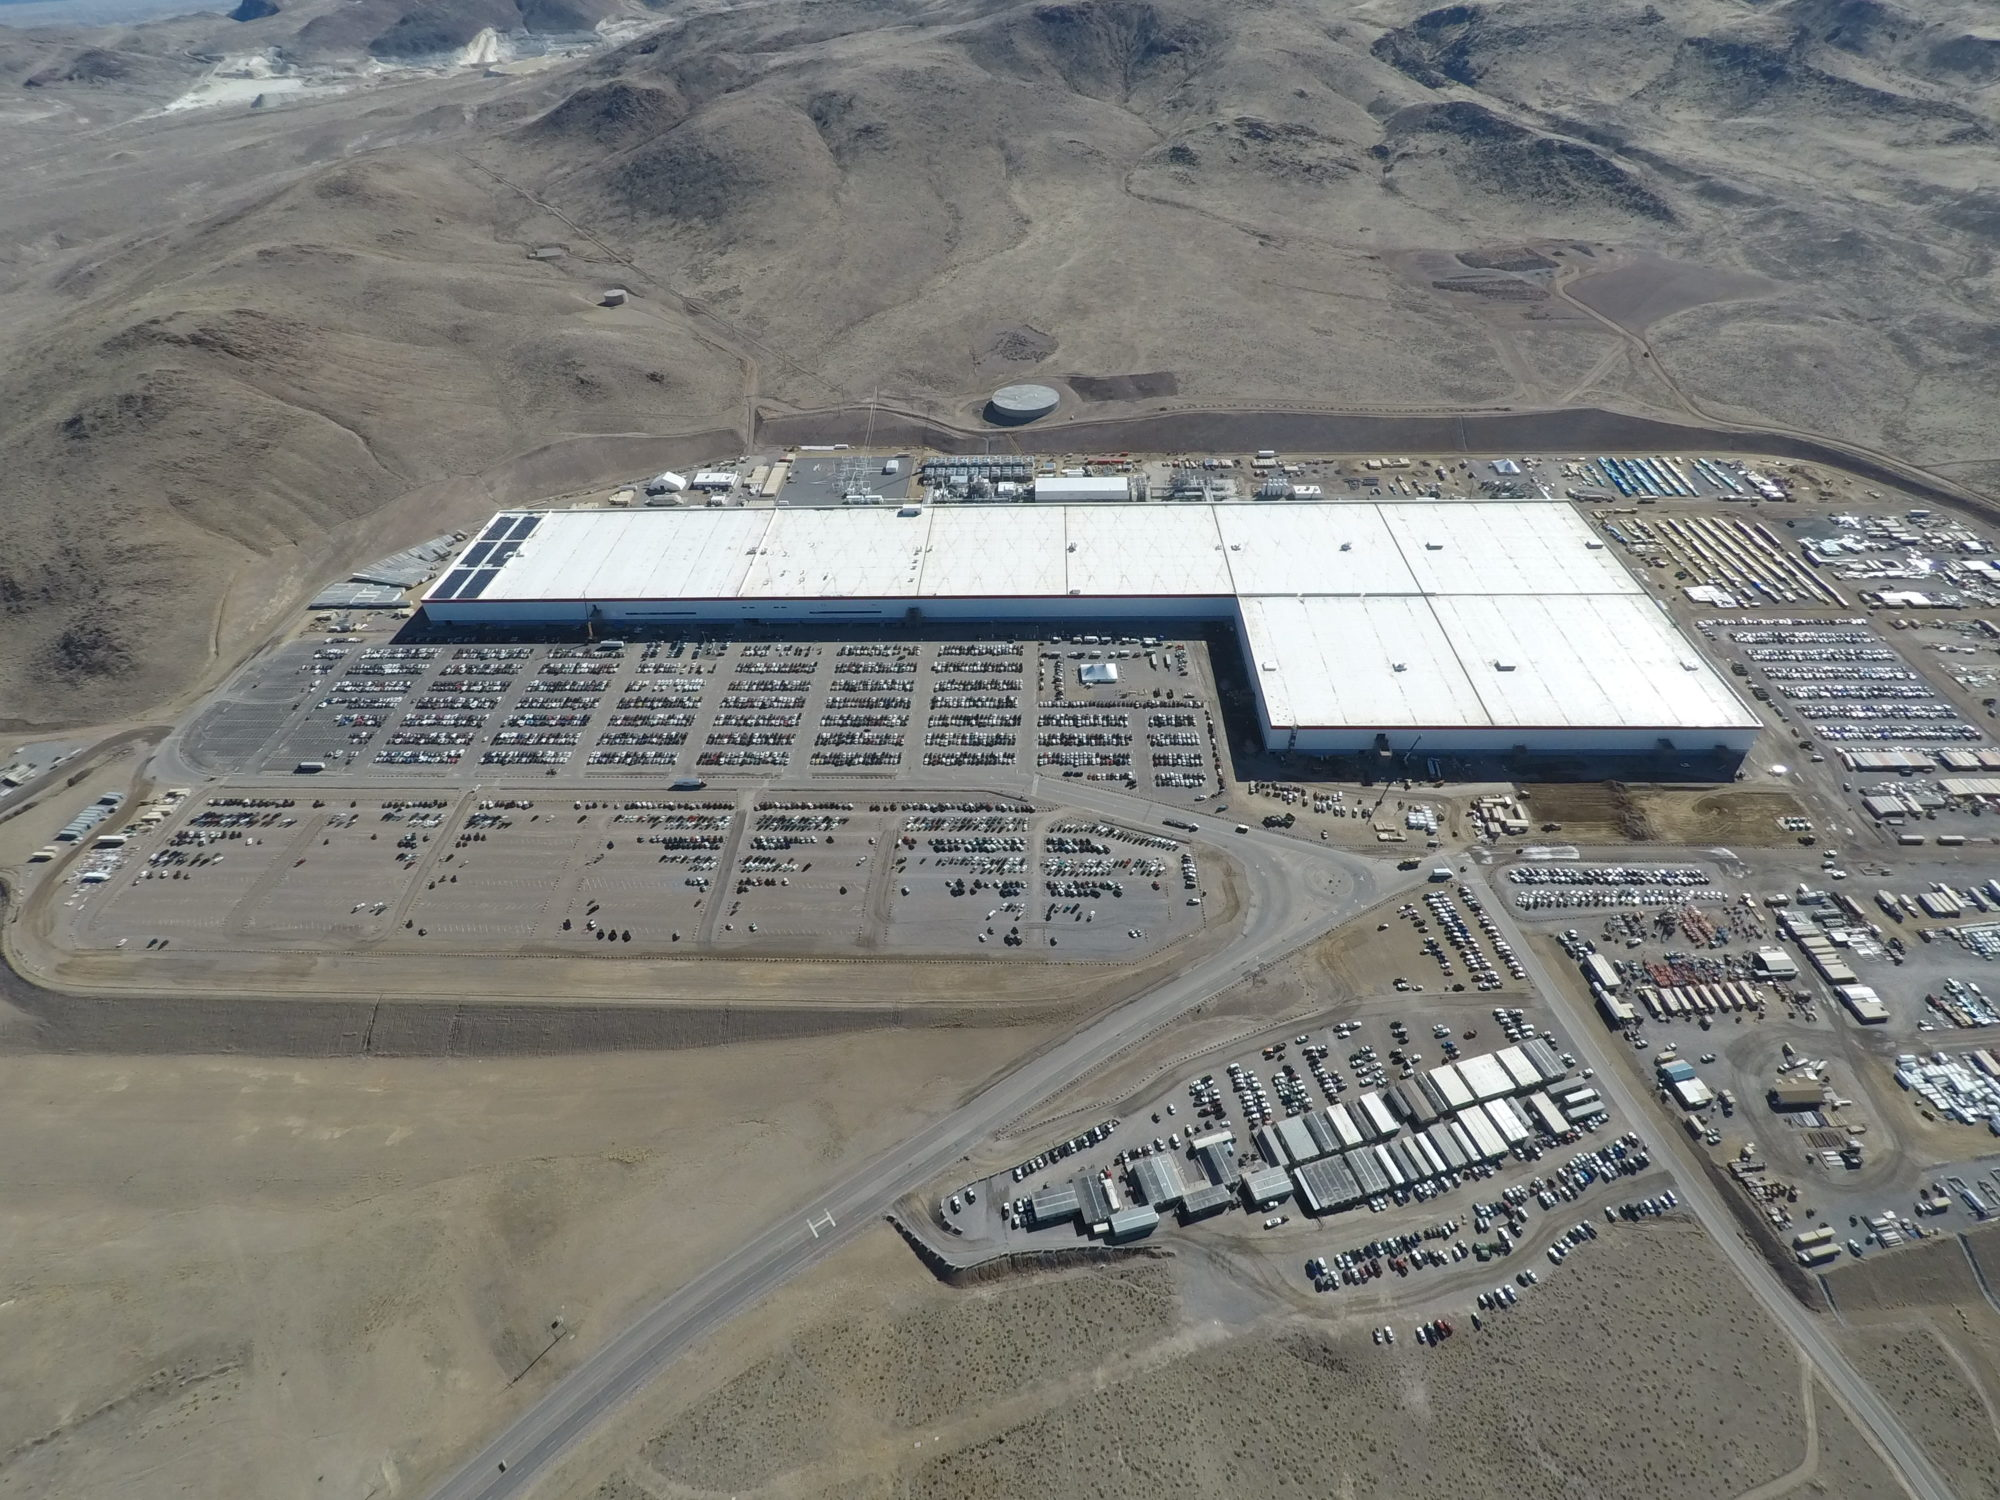 Tesla GIgafactory 1 as of March 12, 2018 [Credit: Teslarati]